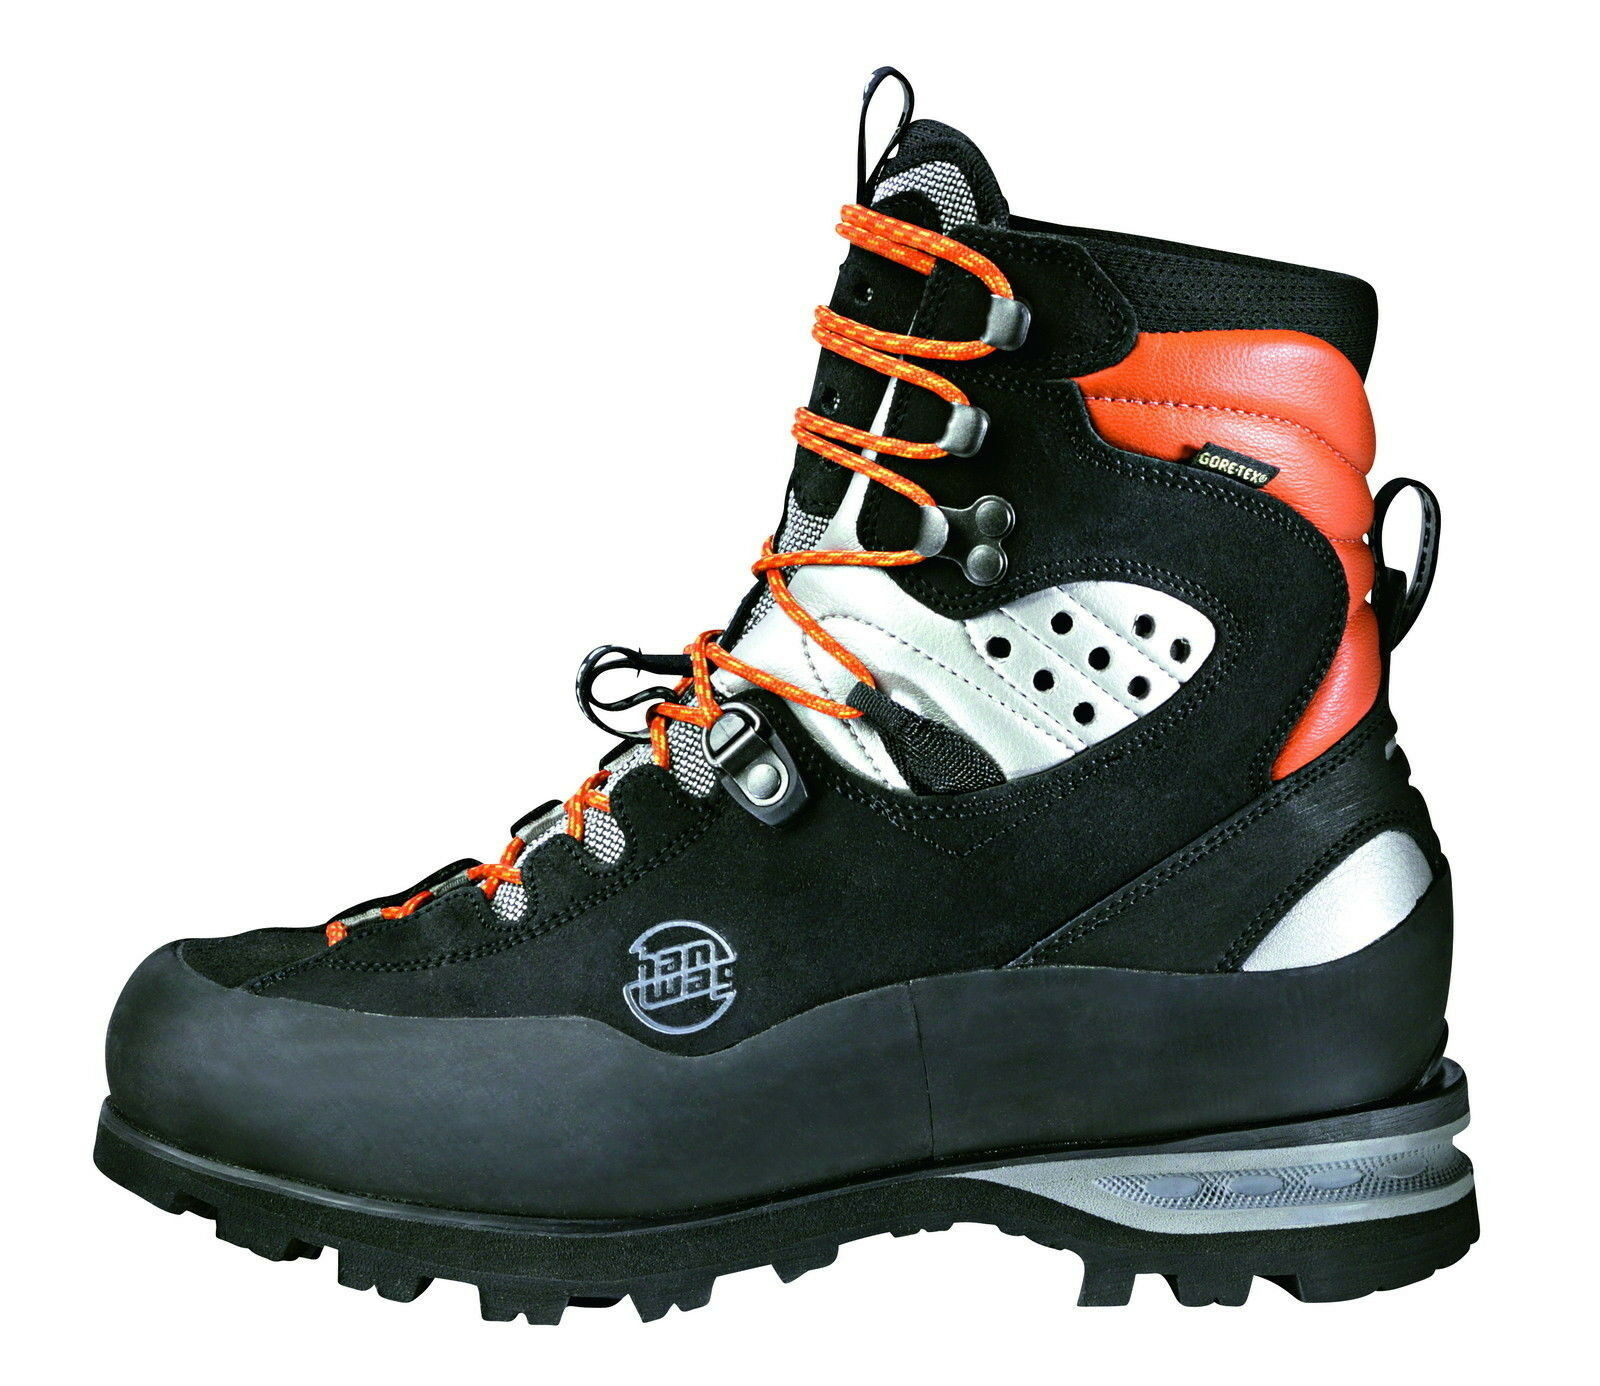 Hanwag Mountain shoes Friction GTX Gr.13 - 48,5